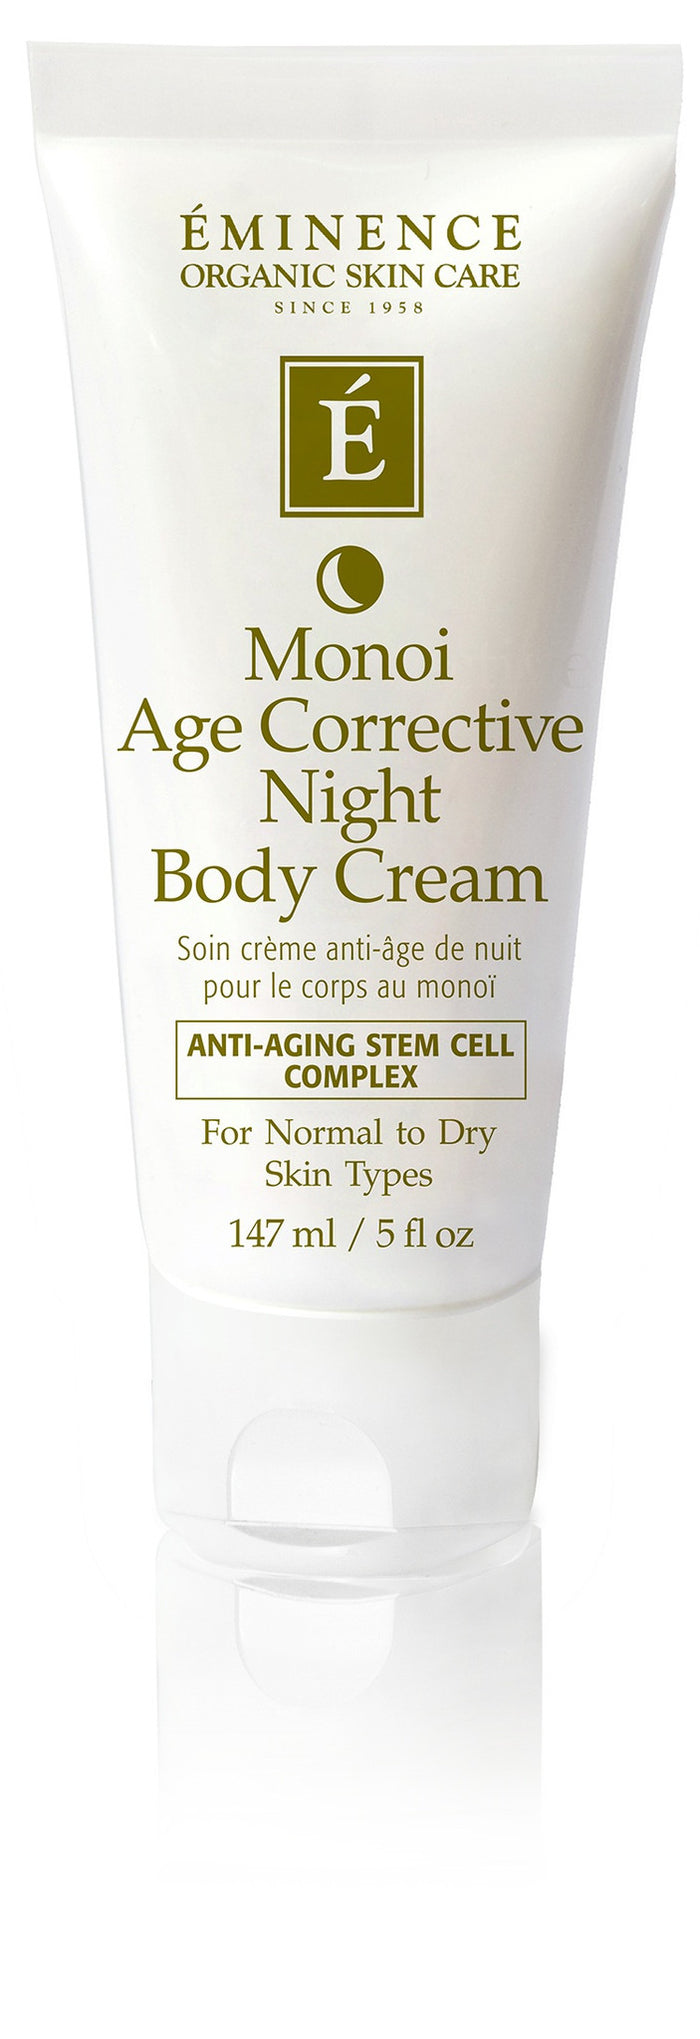 Monoi Age Corrective Body Lotion